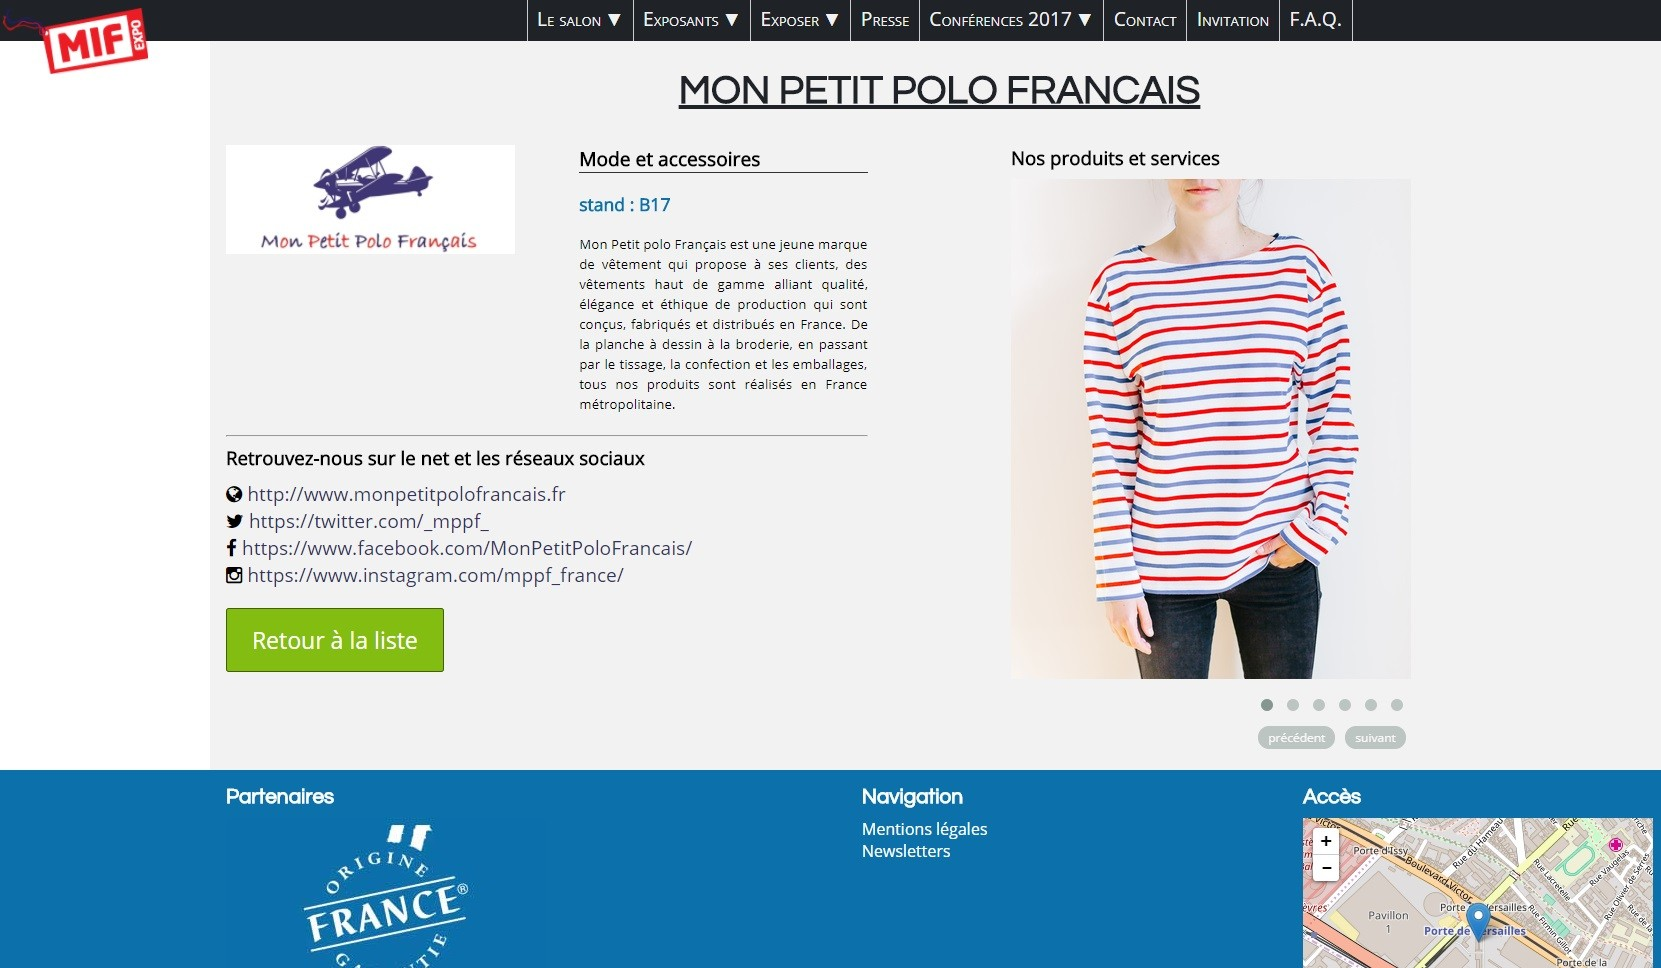 MIF EXPO : Salon du Made in France 2017